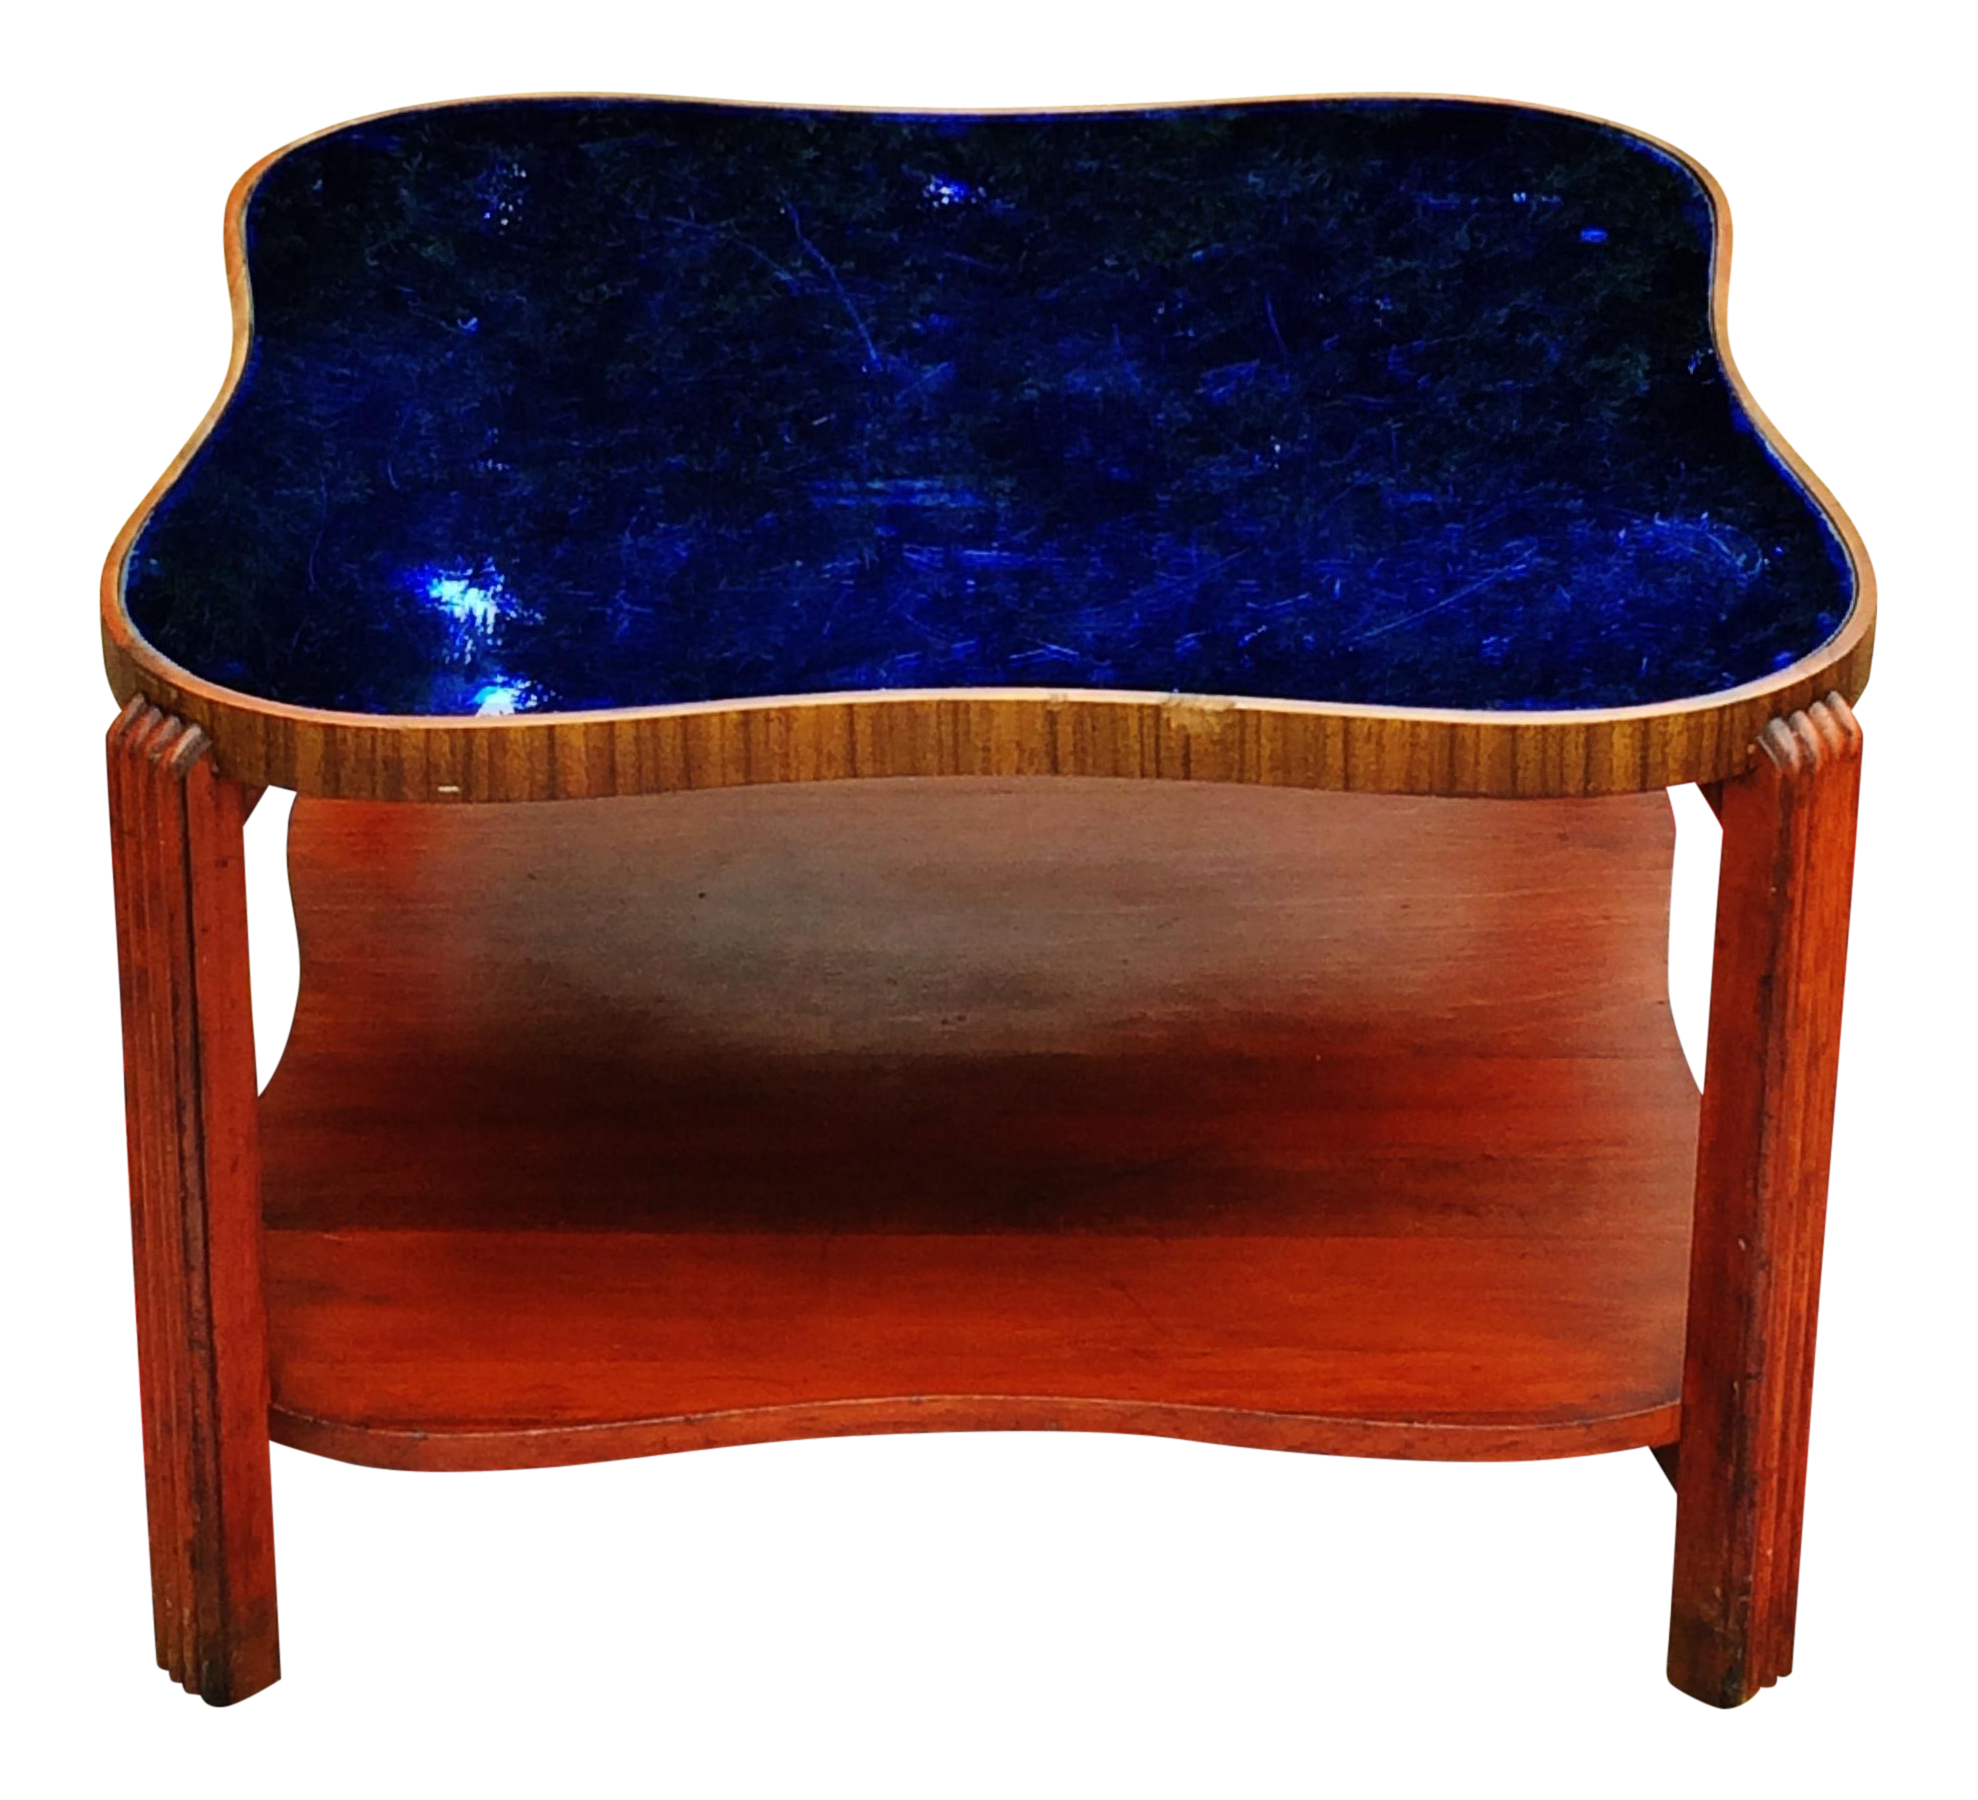 Art Deco Cobalt Blue Glass Mirror Coffee Table